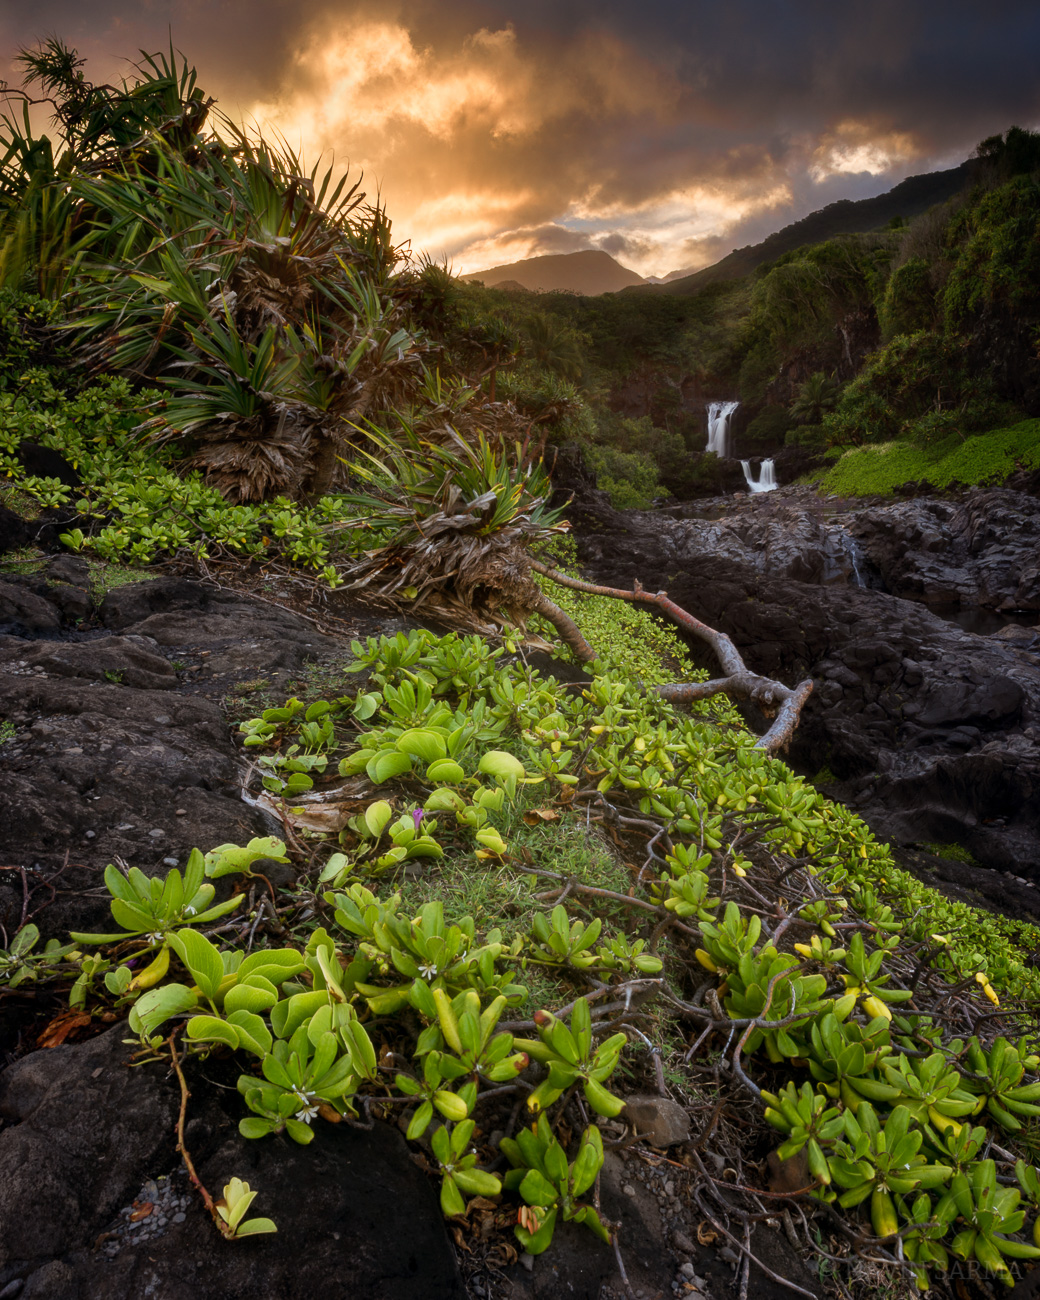 A radiant scene on the east coast of Maui, where the river meets the sea at Oheo Gulch. Maui, Hawaii.